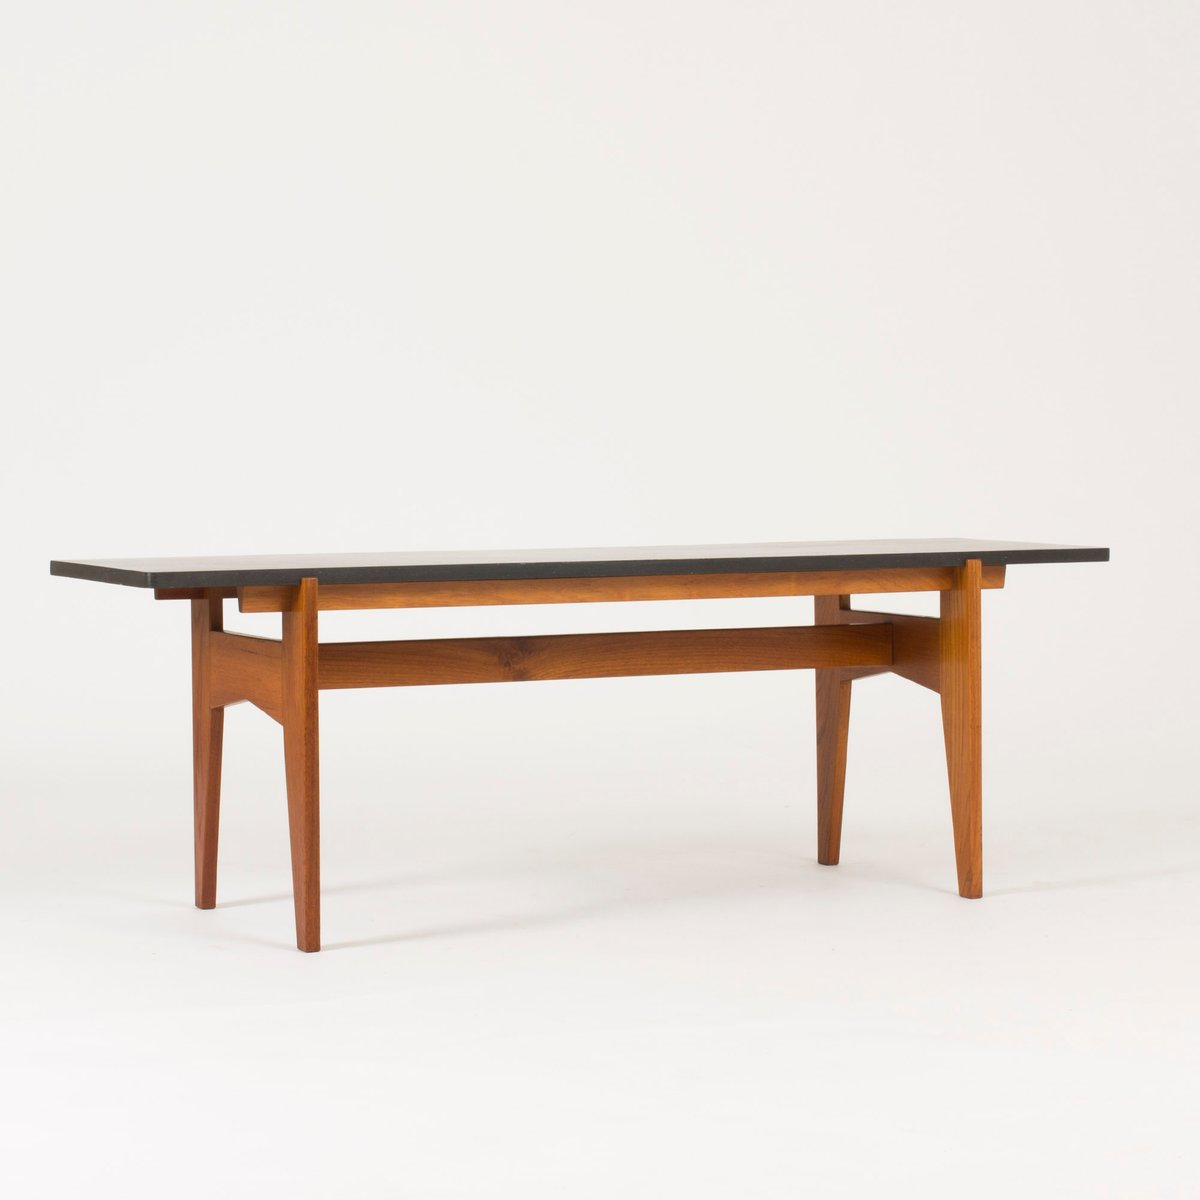 Teak and Black Marble Coffee Table by HansAgne Jakobsson 1950s for